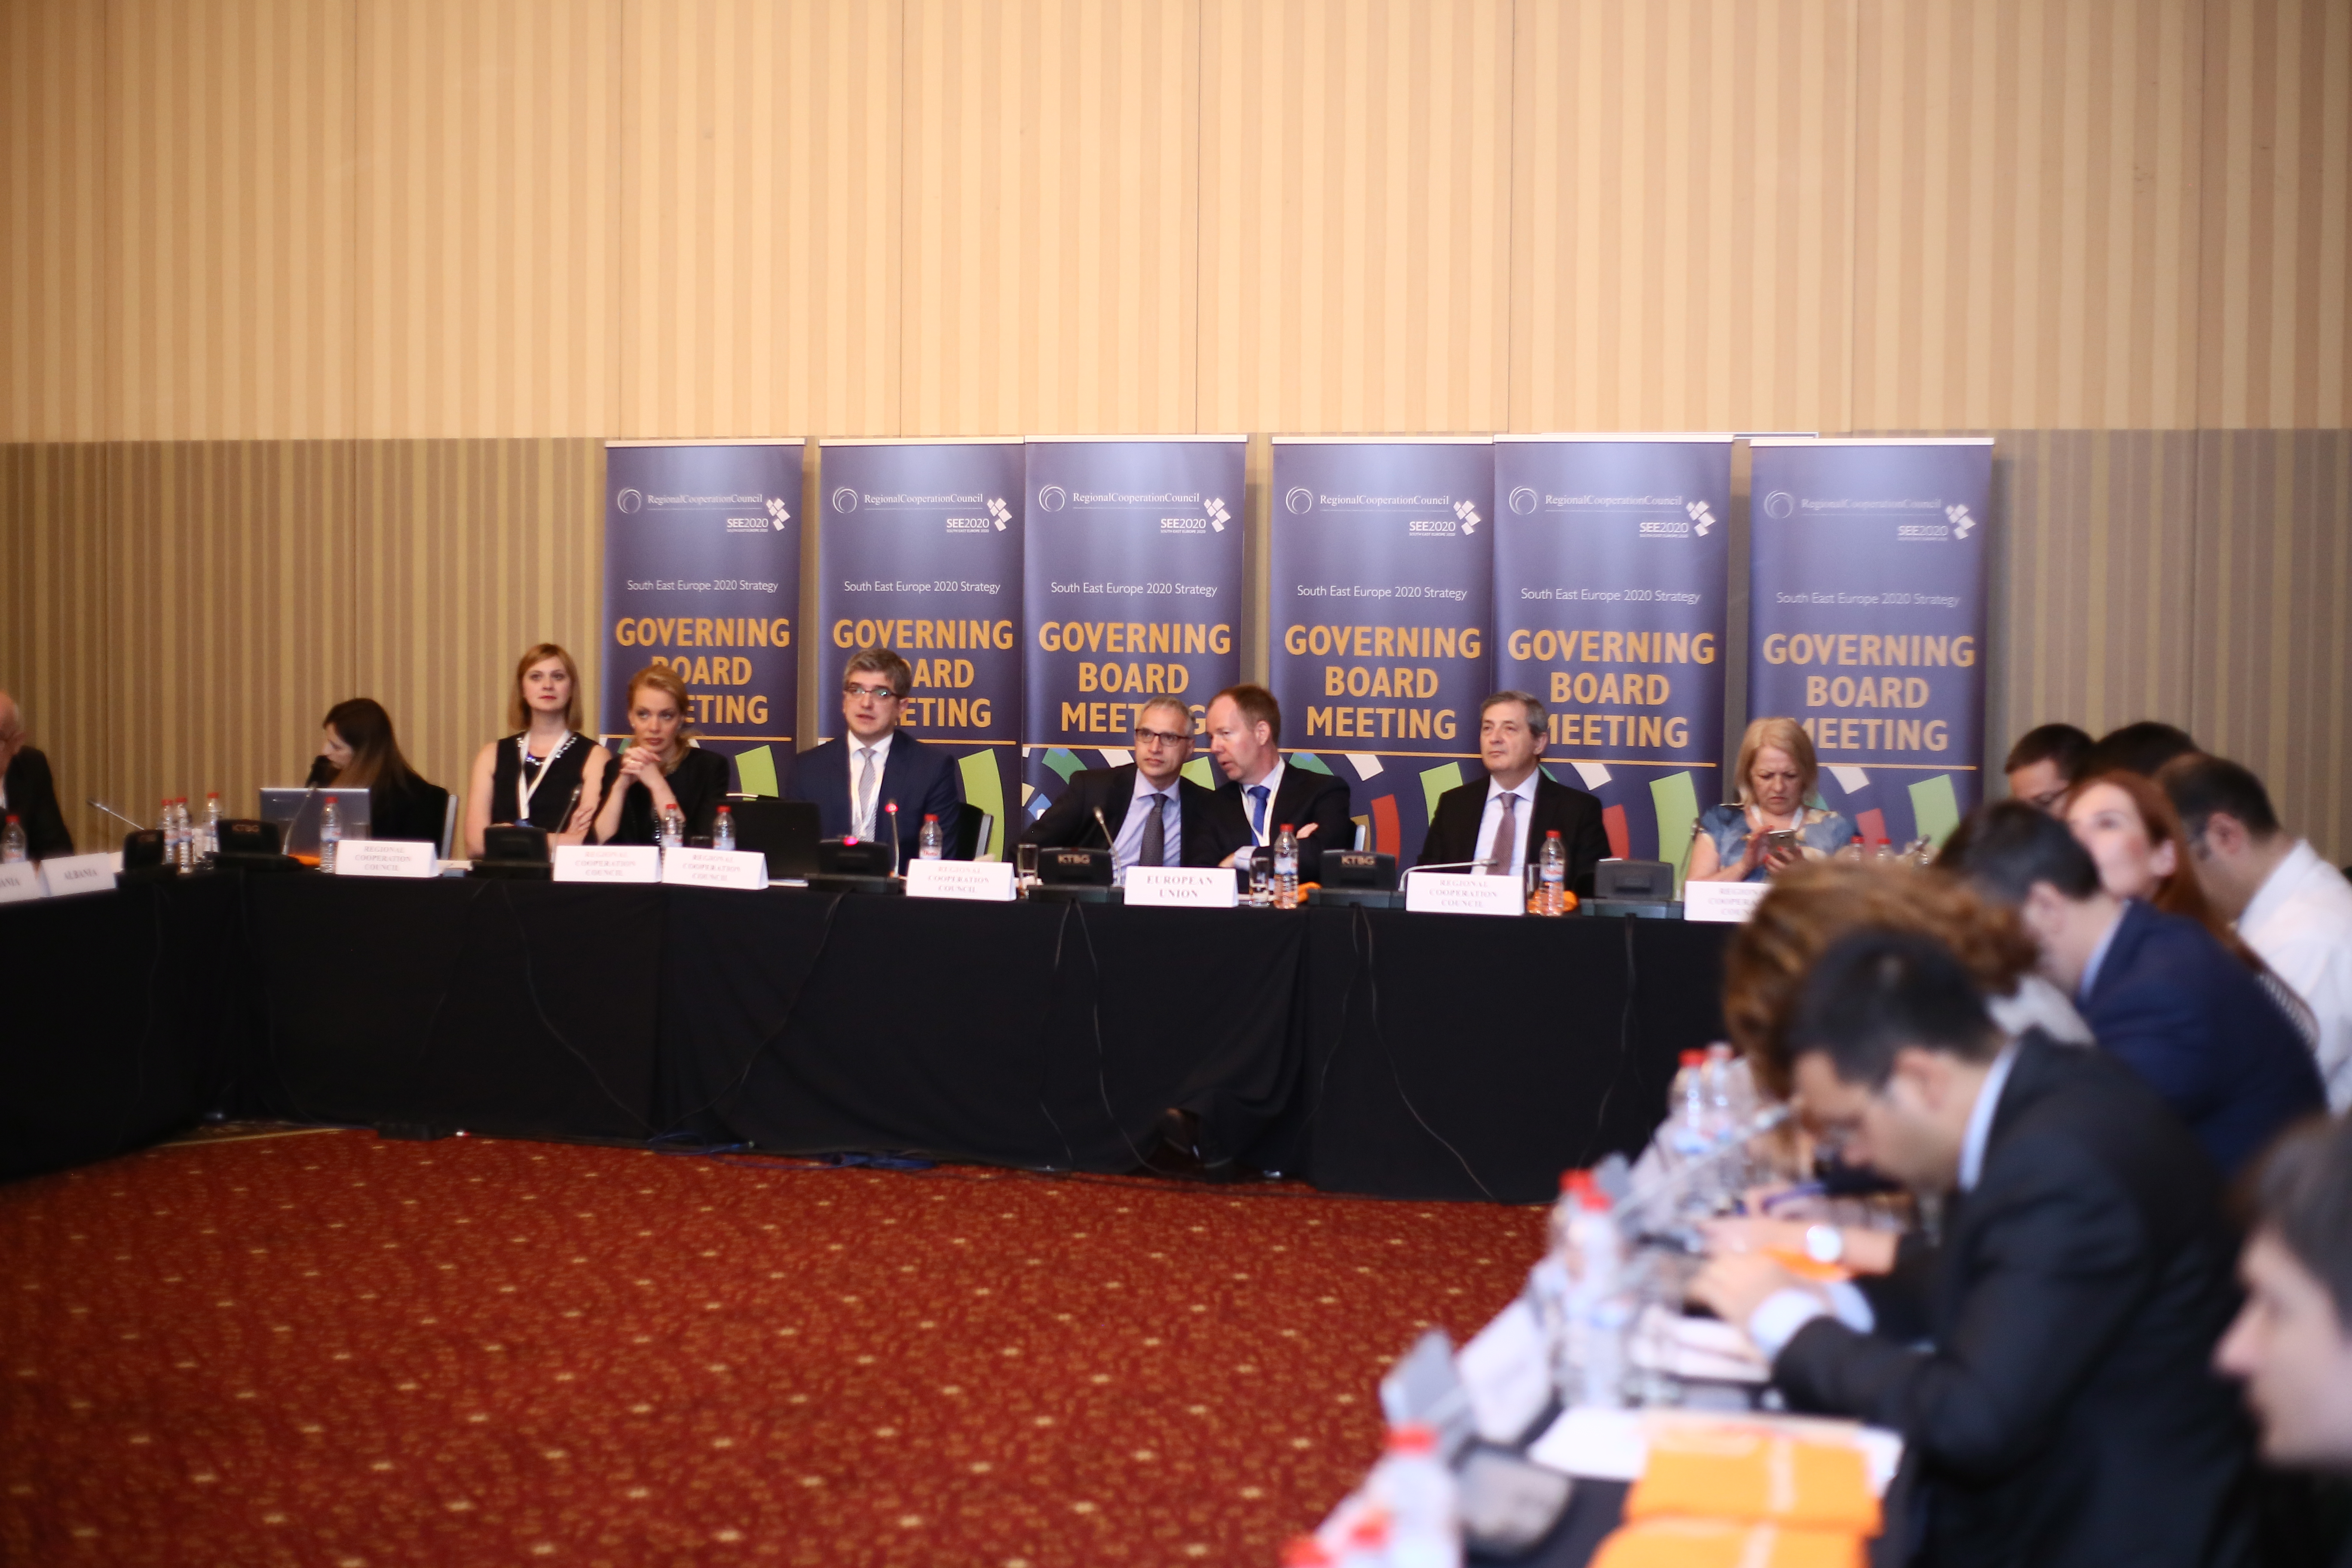 The third meeting of the Governing Board of the Regional Cooperation Council's (RCC) South East Europe 2020 (SEE 2020) Strategy took place in Pravets (Bulgaria), on 30 May 2016. (Photo: Regional Cooperation Council/Ivo Petkov)